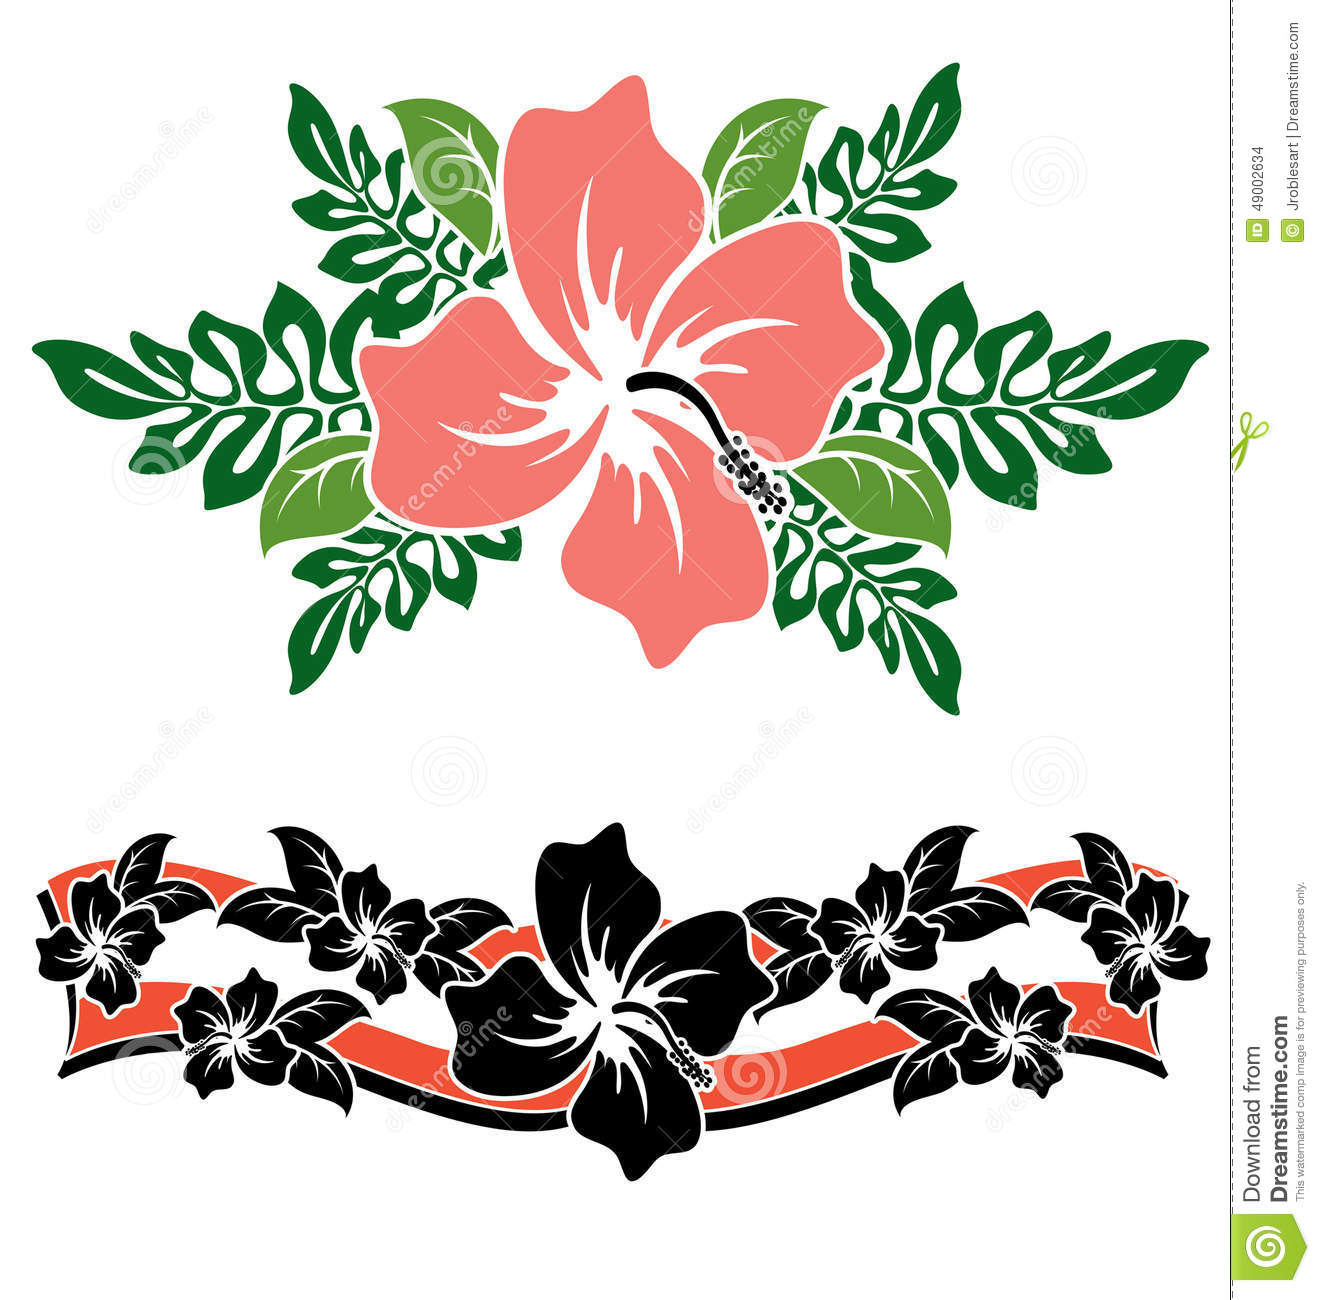 Hawaiian hibiscus flowers stock vector illustration of stencil download hawaiian hibiscus flowers stock vector illustration of stencil 49002634 izmirmasajfo